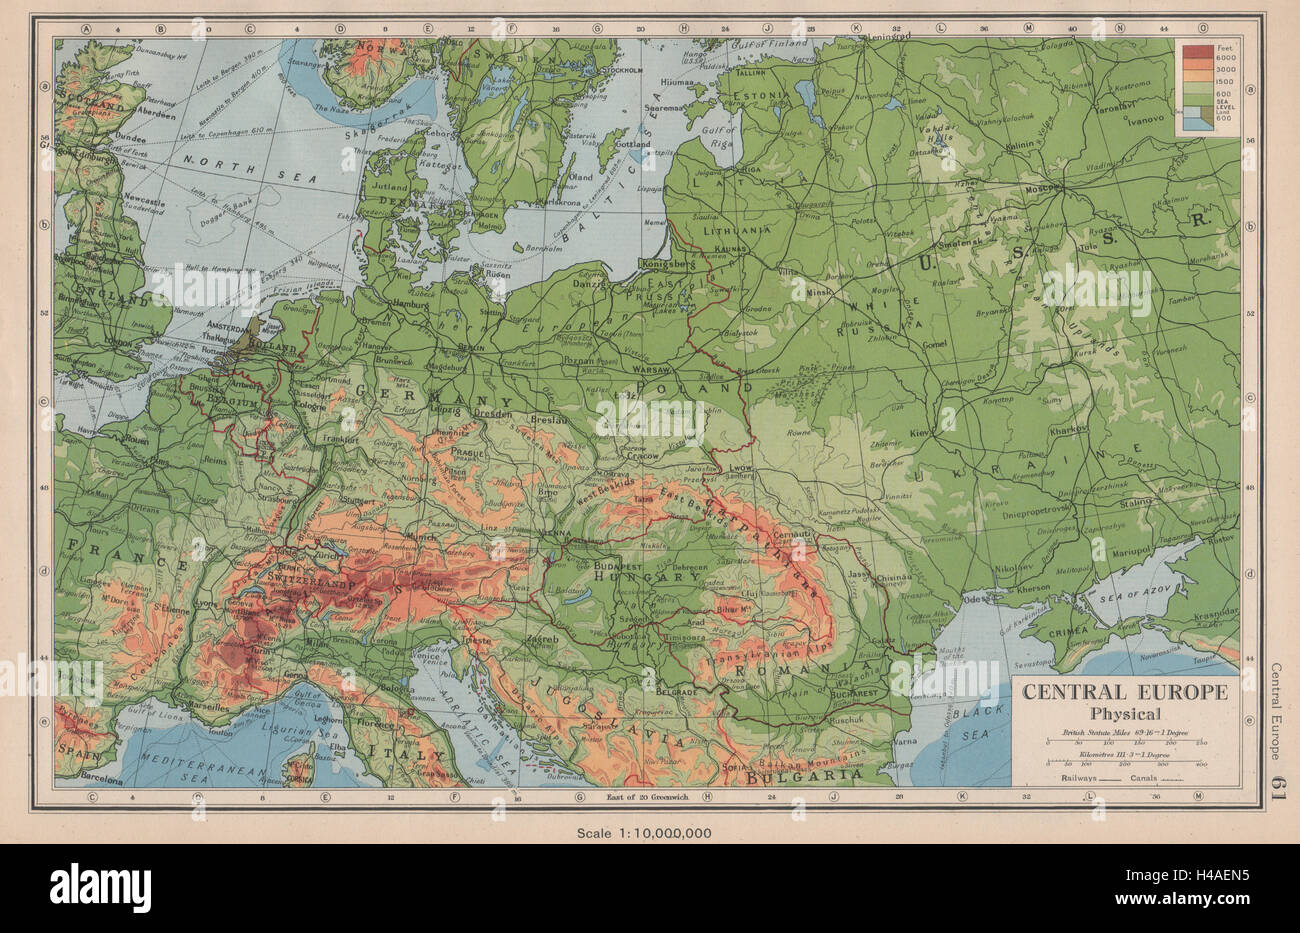 CENTRAL EUROPE Physical Shows Third Reich Enlarged Hungary - Third reich map 1944